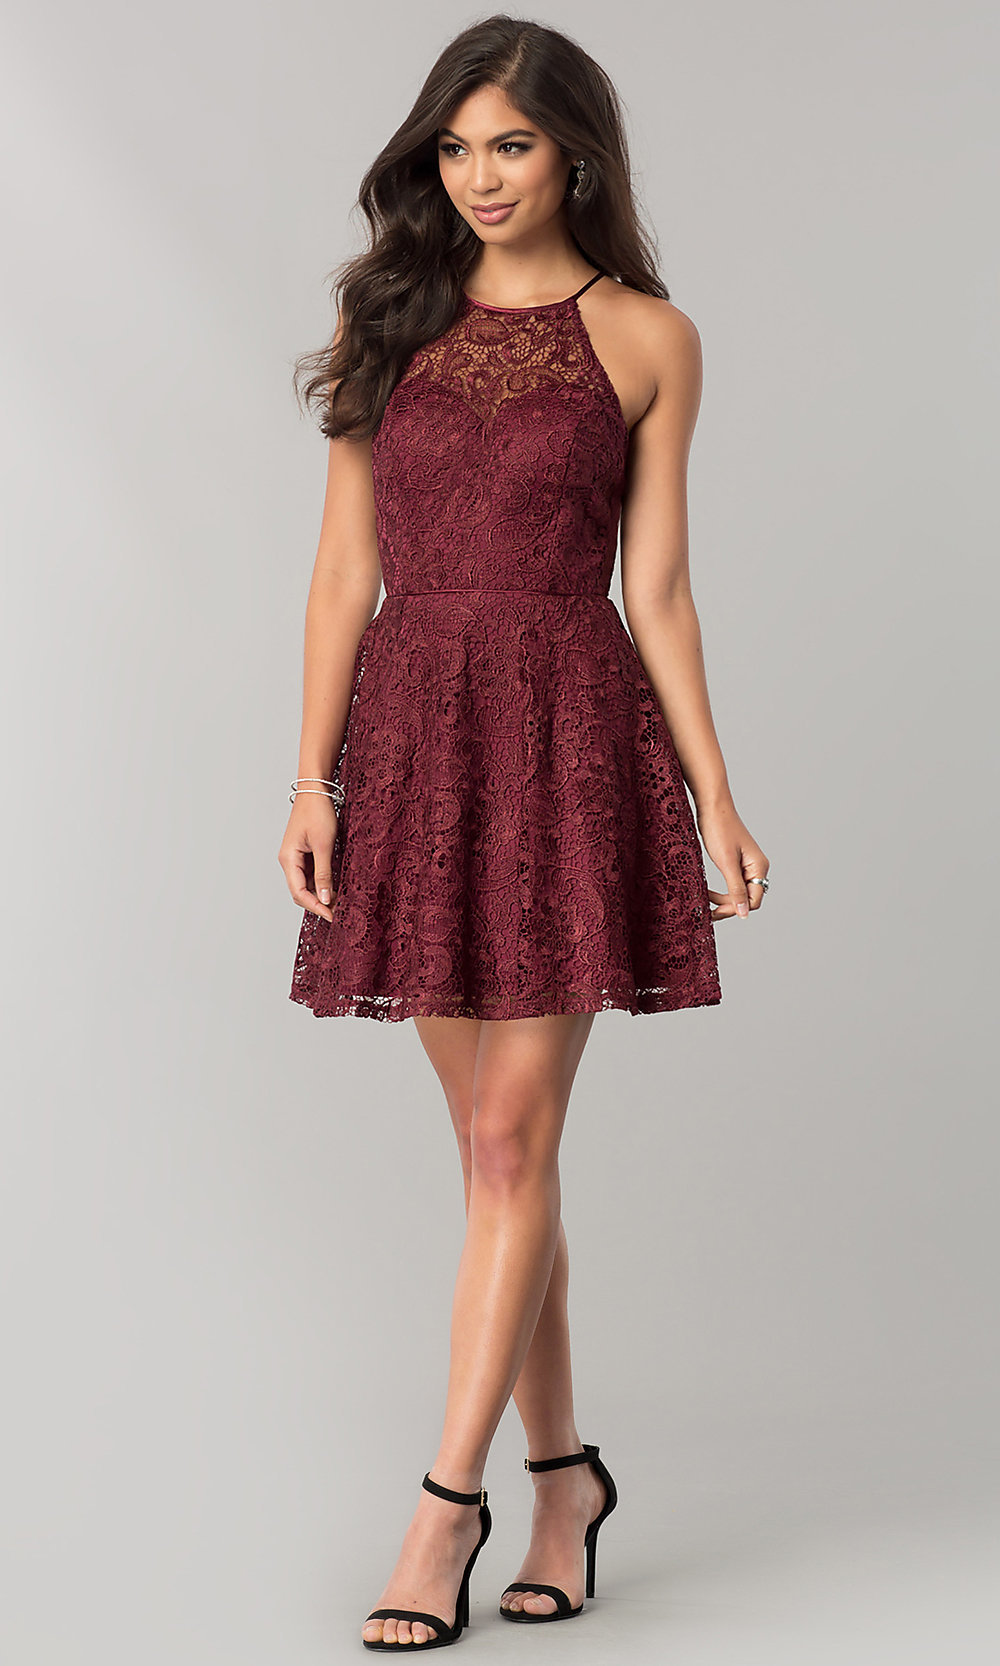 46f66910f59 Image of wine red lace short junior-size homecoming dress. Style  FLA-. Tap  to expand